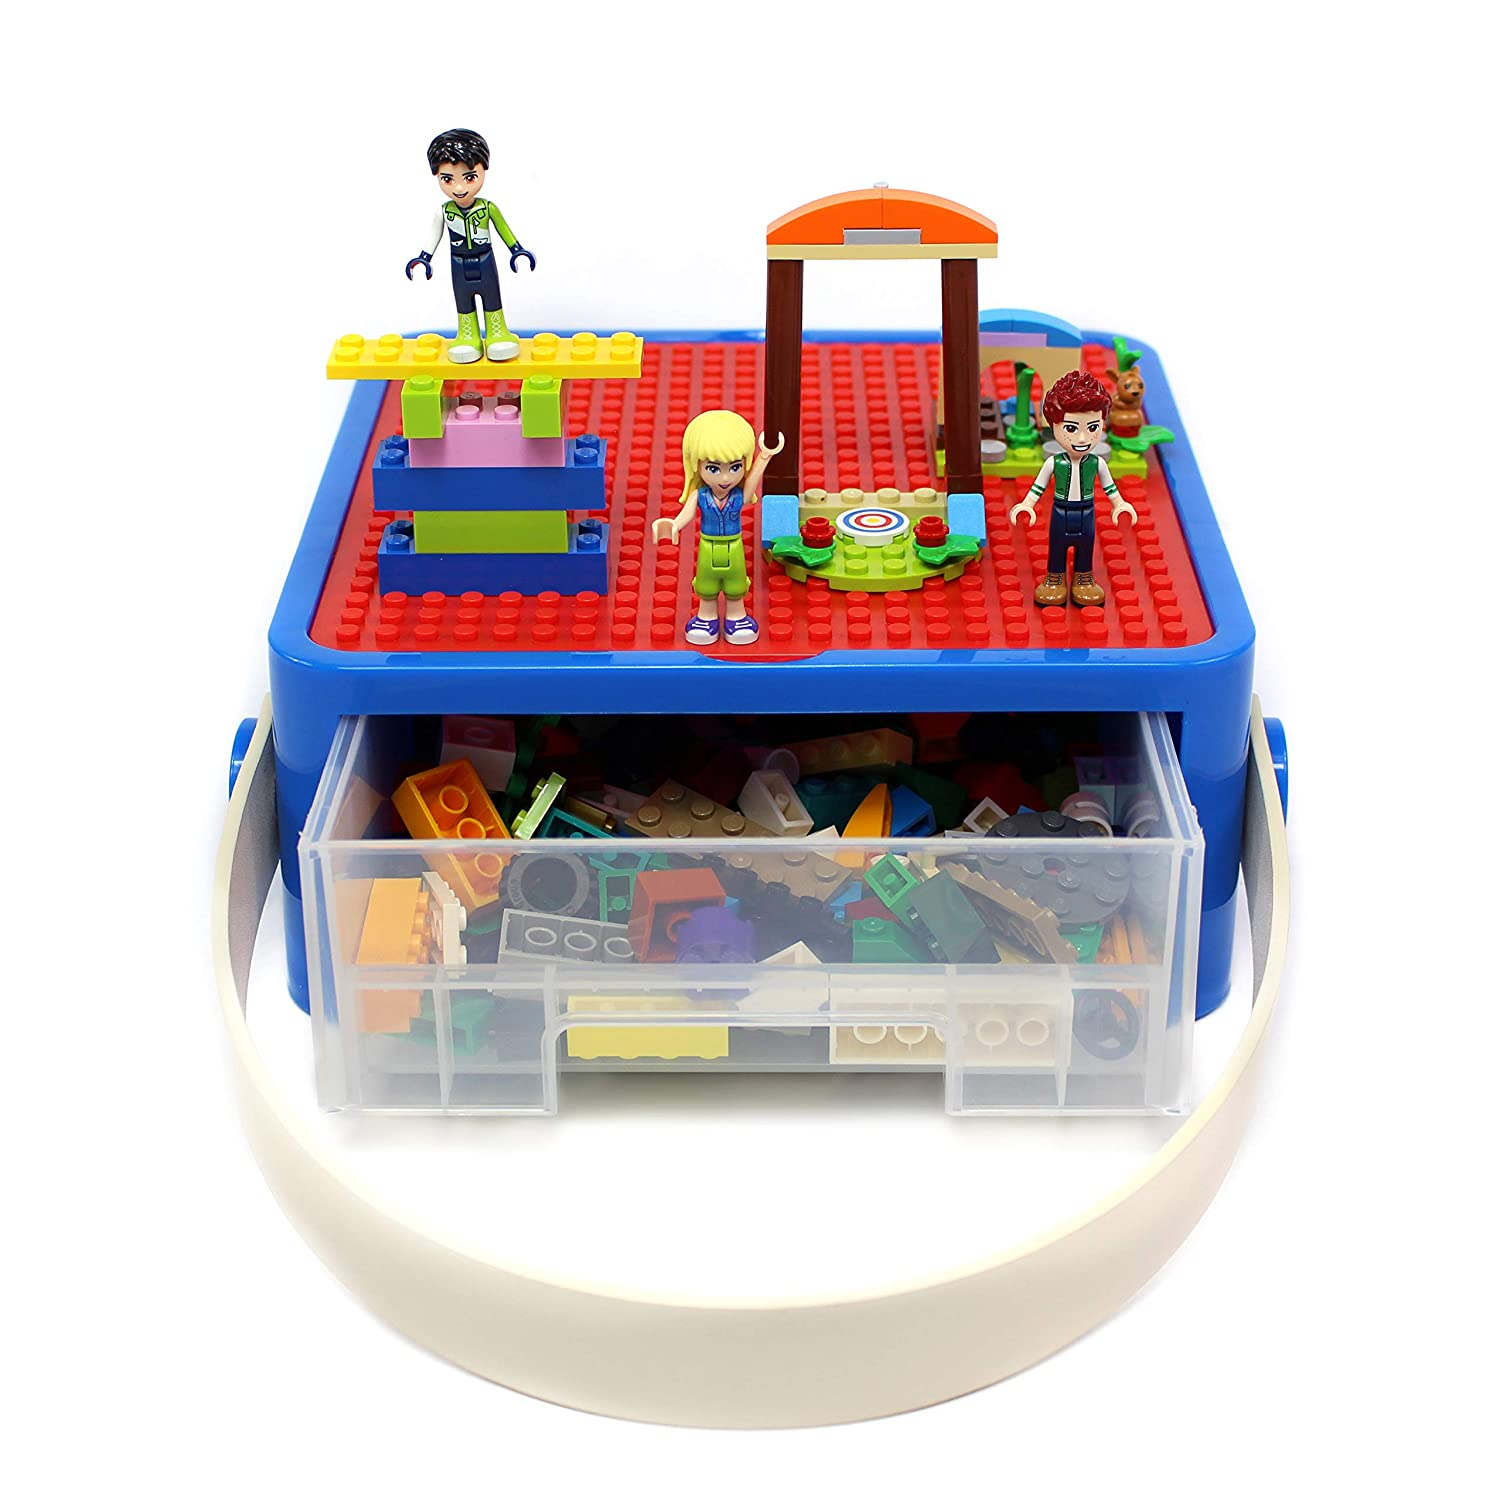 Dolls Compatible with Lego and Barbie Stackable Organizer with Dividers for Stackable Bricks and Toys Art Supplies Brick Nation Storage Container Blocks